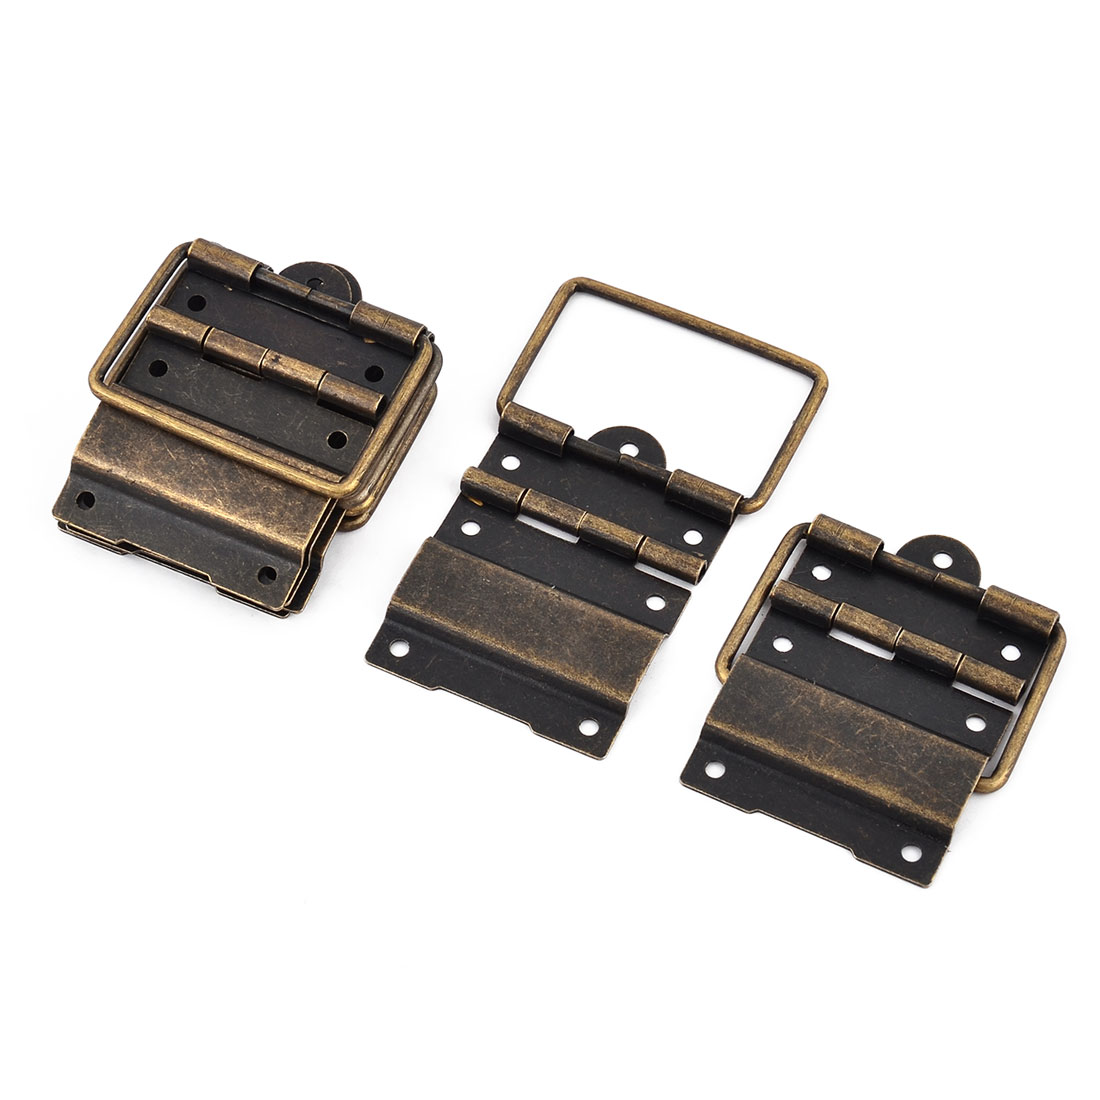 Box Case Retro Style 57mm x 39mm Positioning Support Hinges Bronze Tone 8 PCS